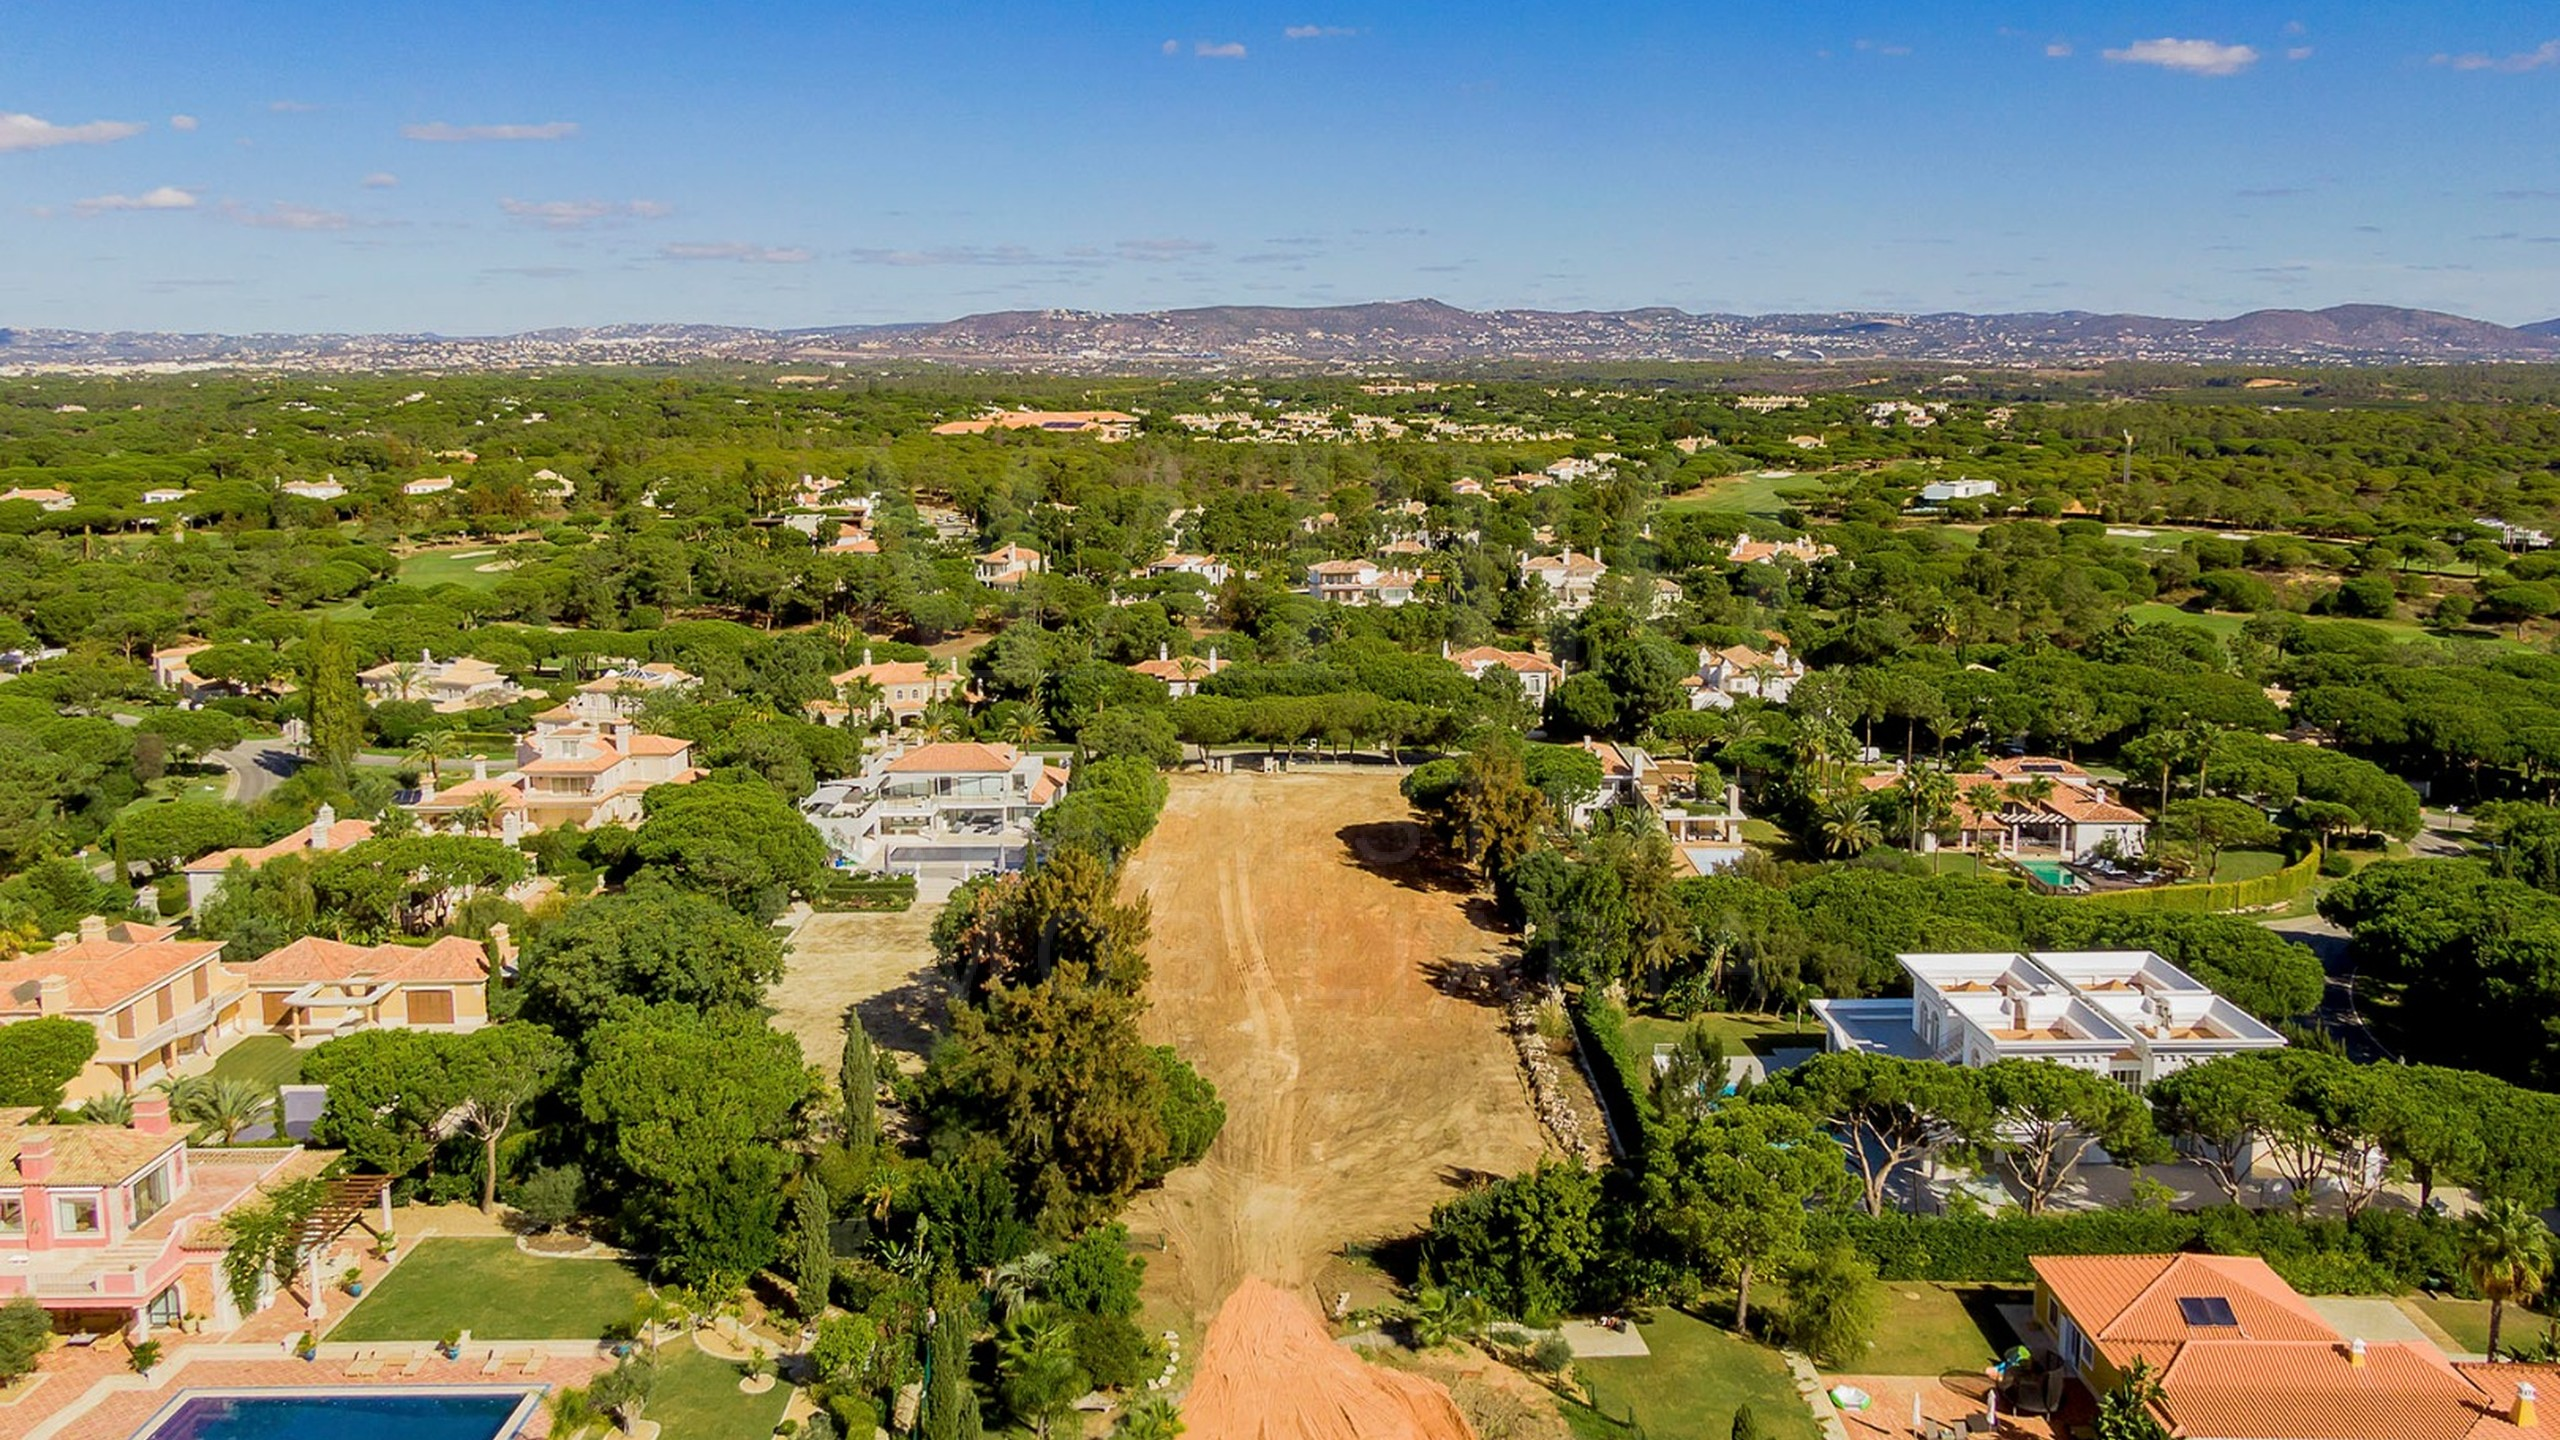 Land for sale in Quinta do Lago